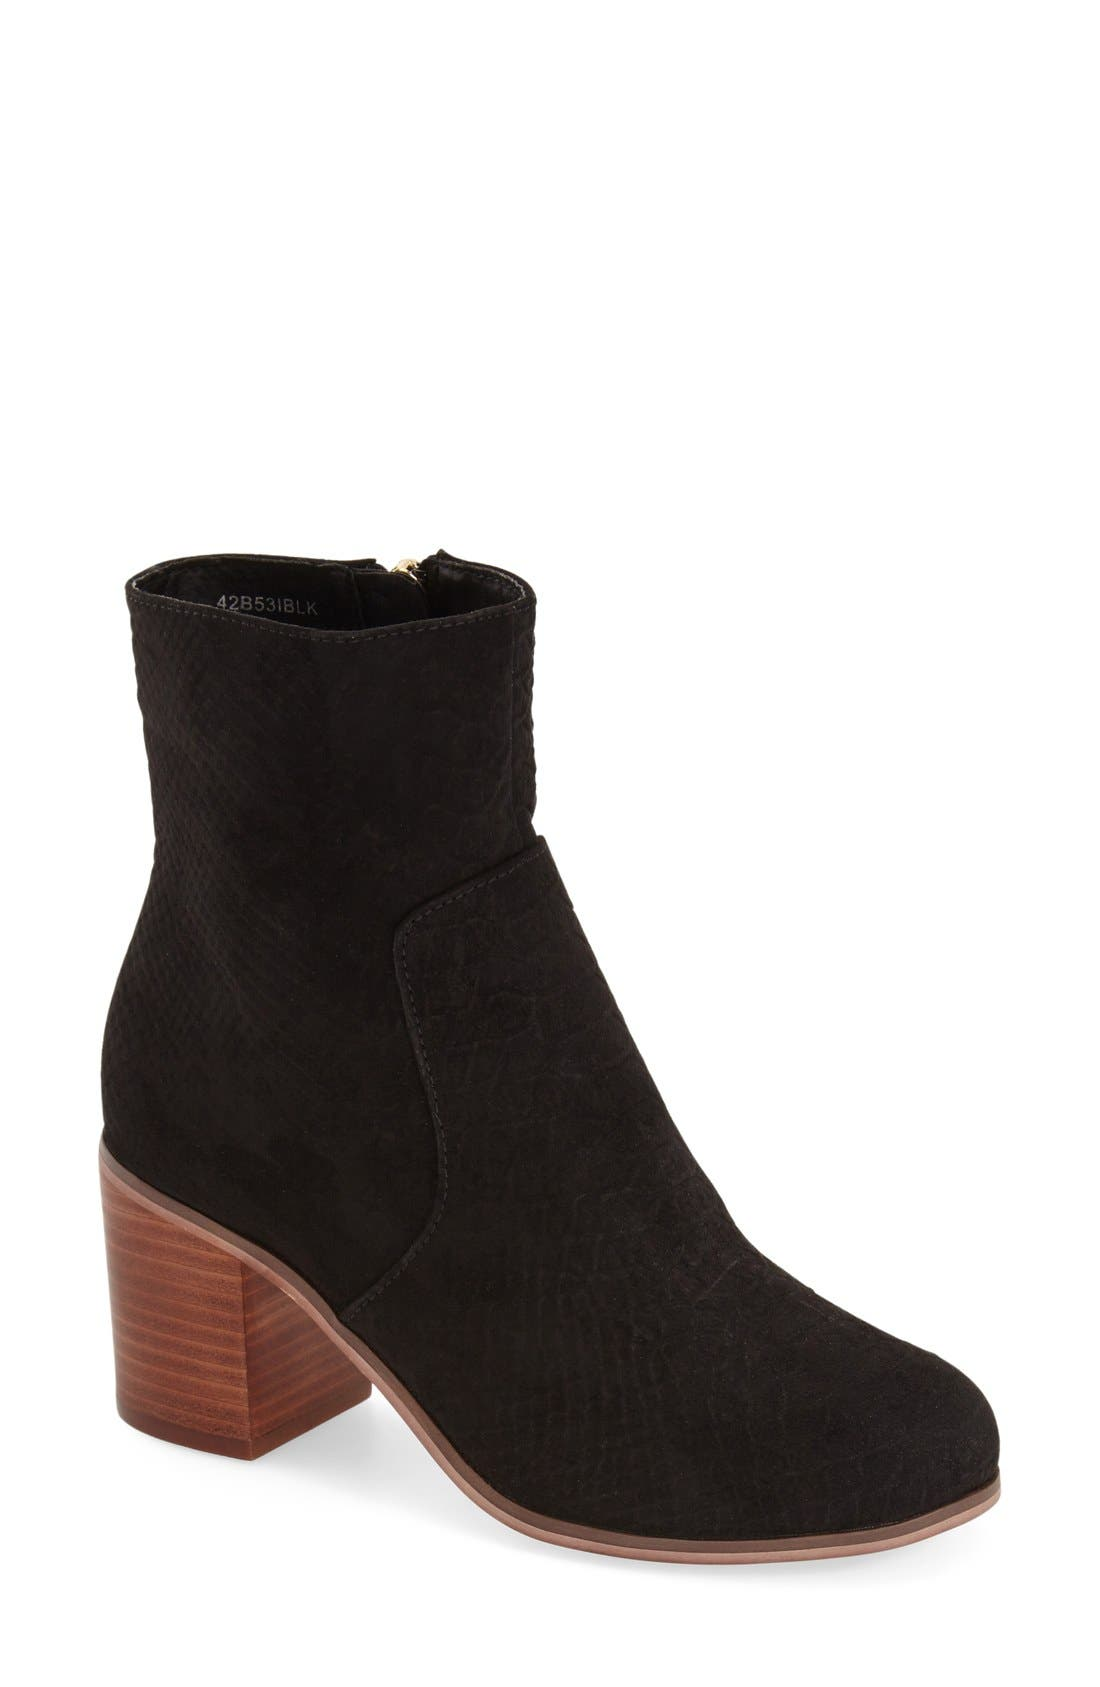 Alternate Image 1 Selected - Topshop 'Bless' Ankle Bootie (Women)